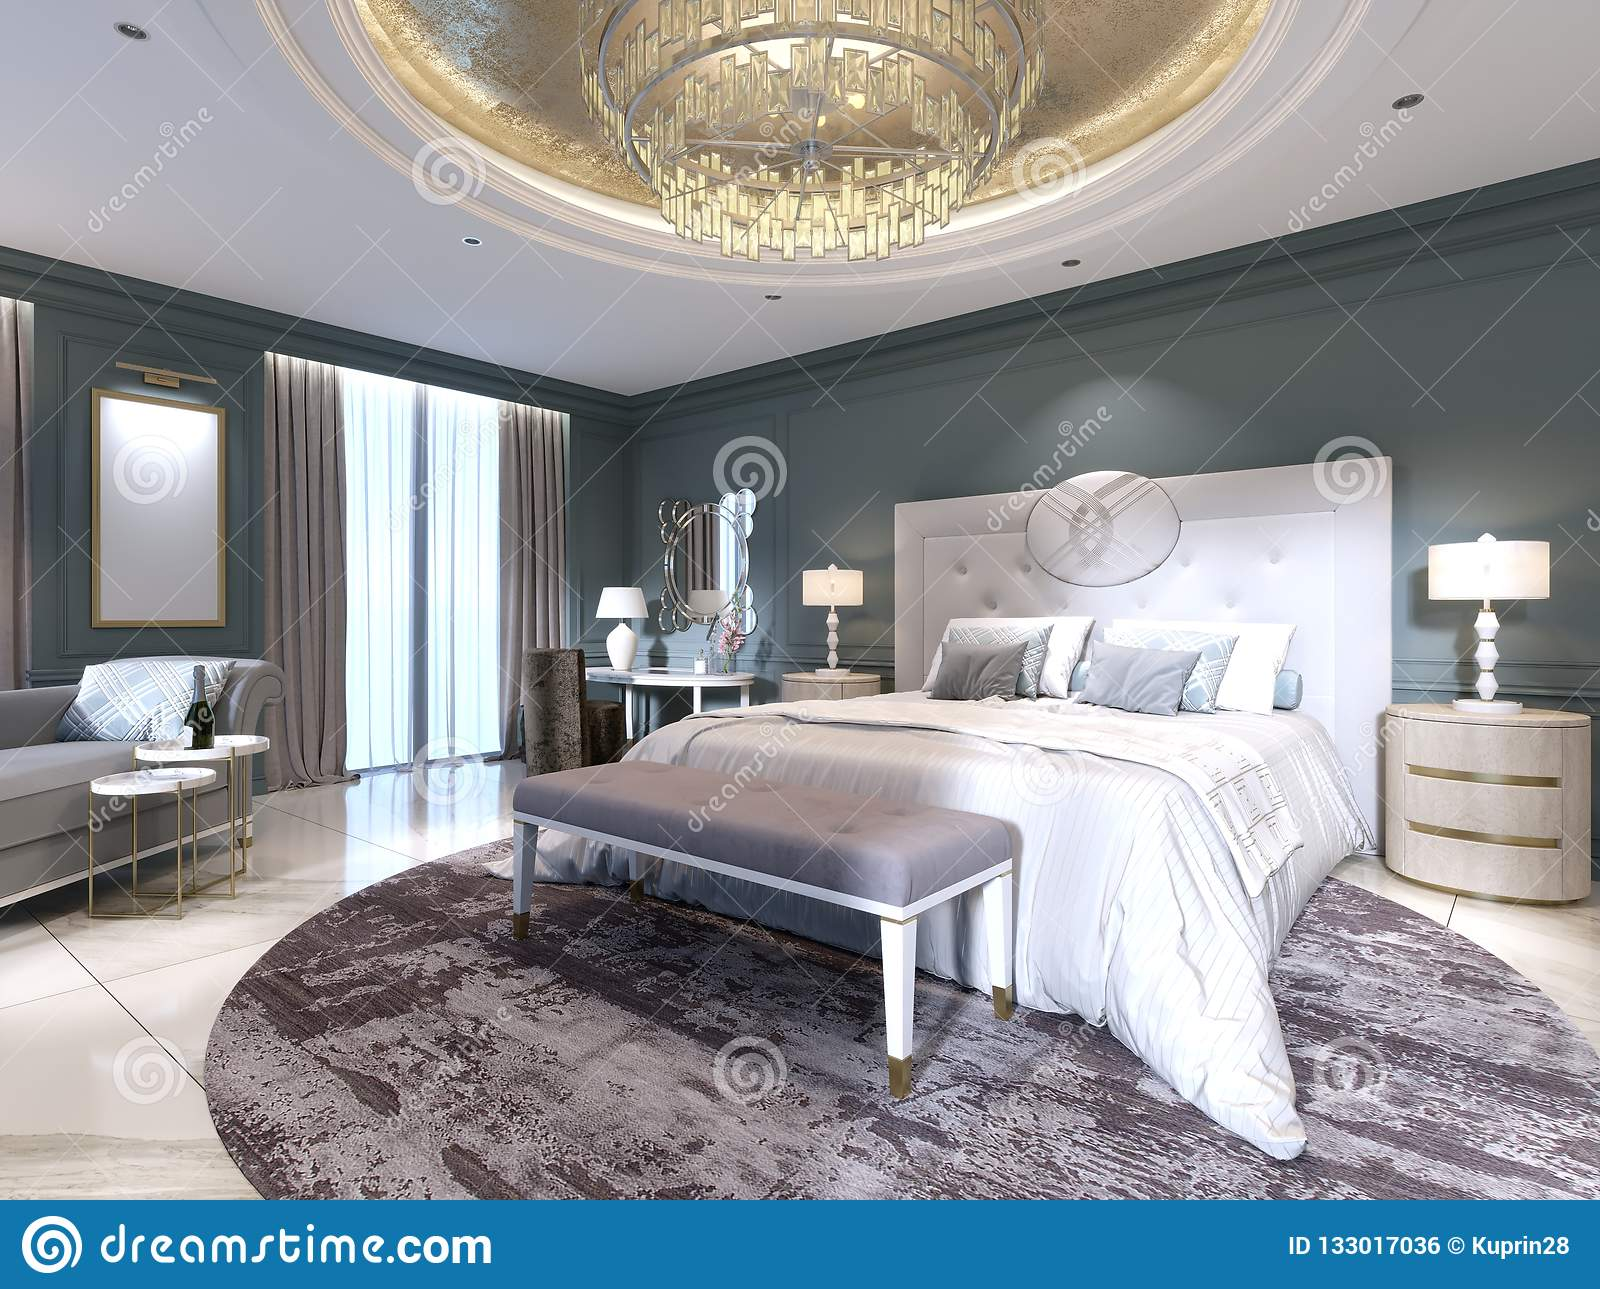 Dressing A Bed Elegant Bedroom Interior With Large Comfortable Bed And Sofa With